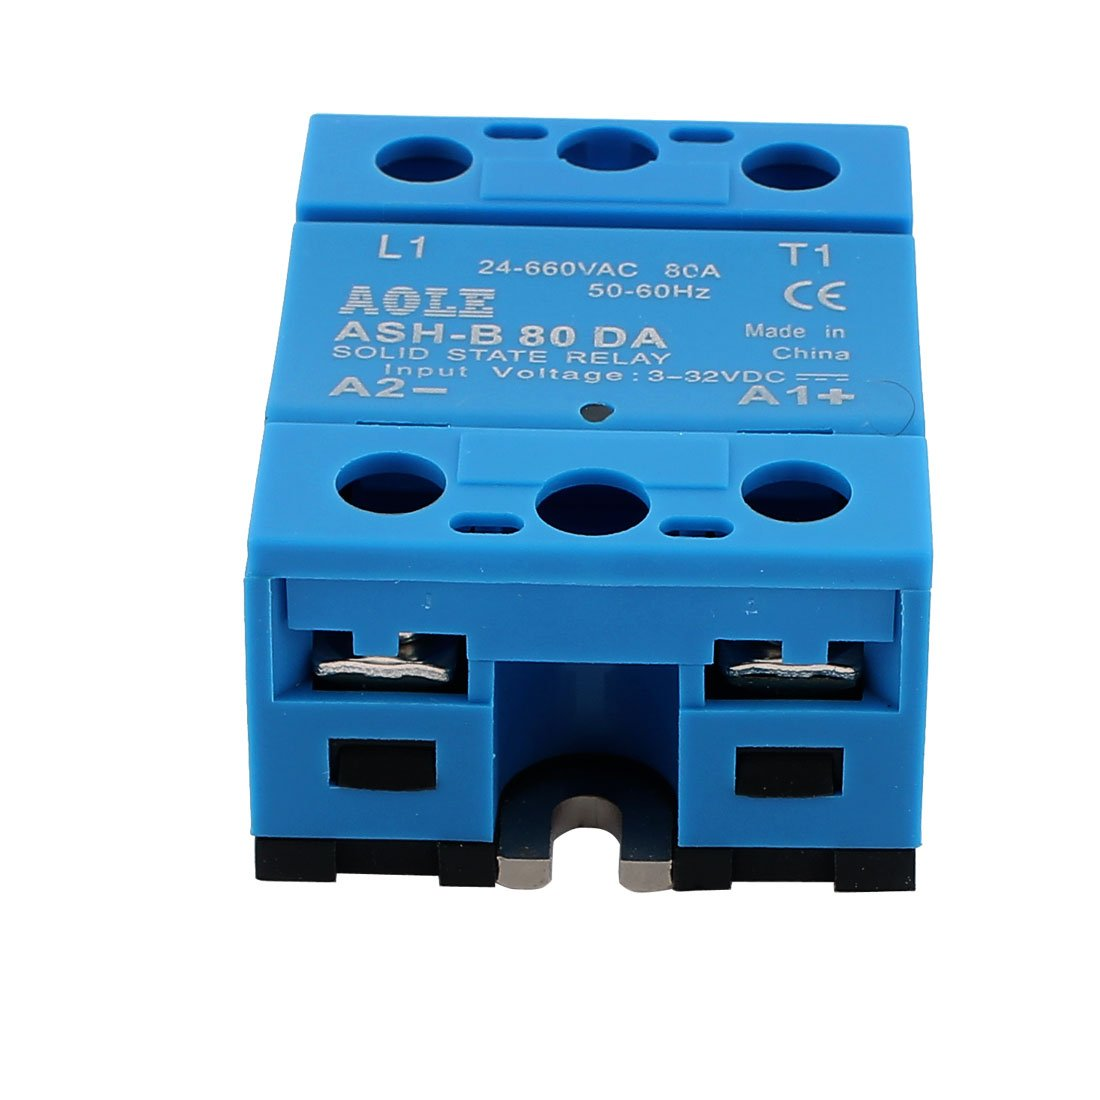 UXCE9 a13070600ux0181 BEM-14840DA 3-32V DC to 24-480V AC 40A Output Single Phase SSR Solid State Relay Uxcell